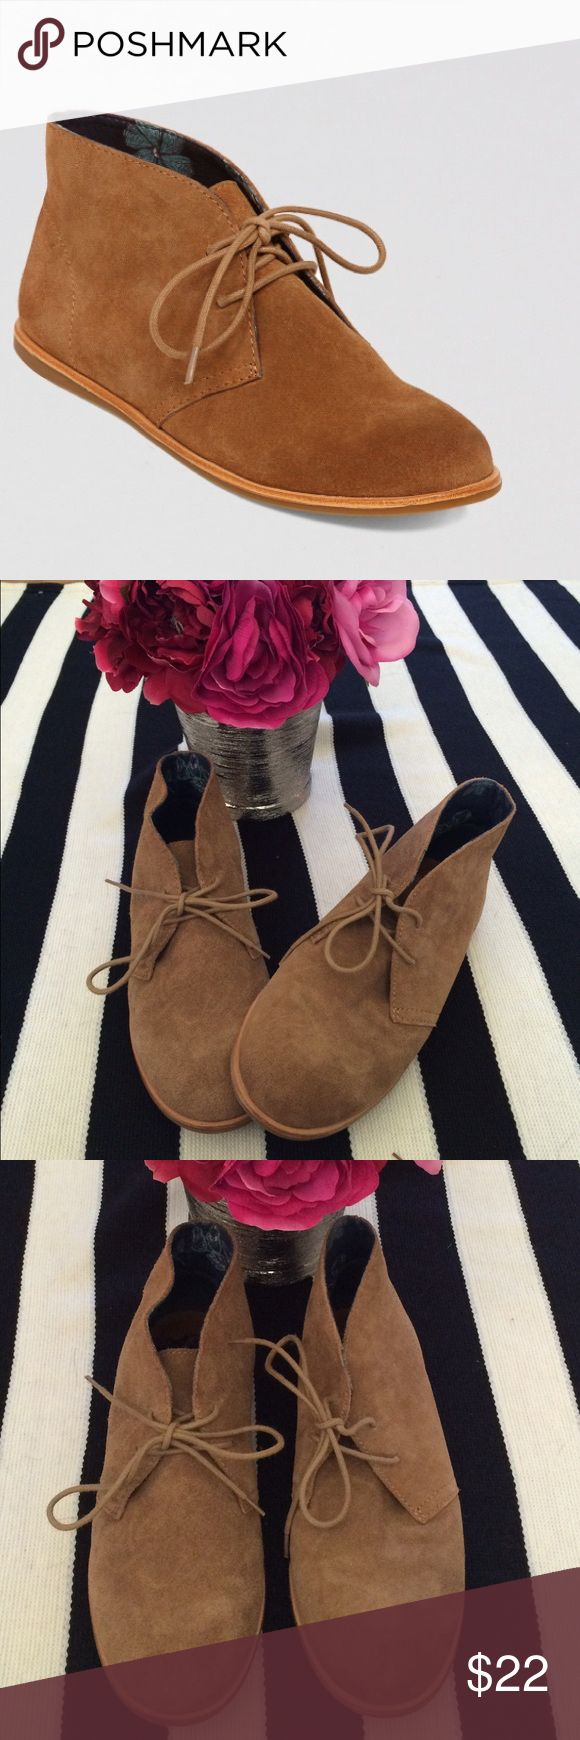 Lucky Brand Flat Lace Up Shoes These shoes have been worn twice, really cute with skinny jeans or ankle pants! Great condition! Lucky Brand Shoes Ankle Boots & Booties